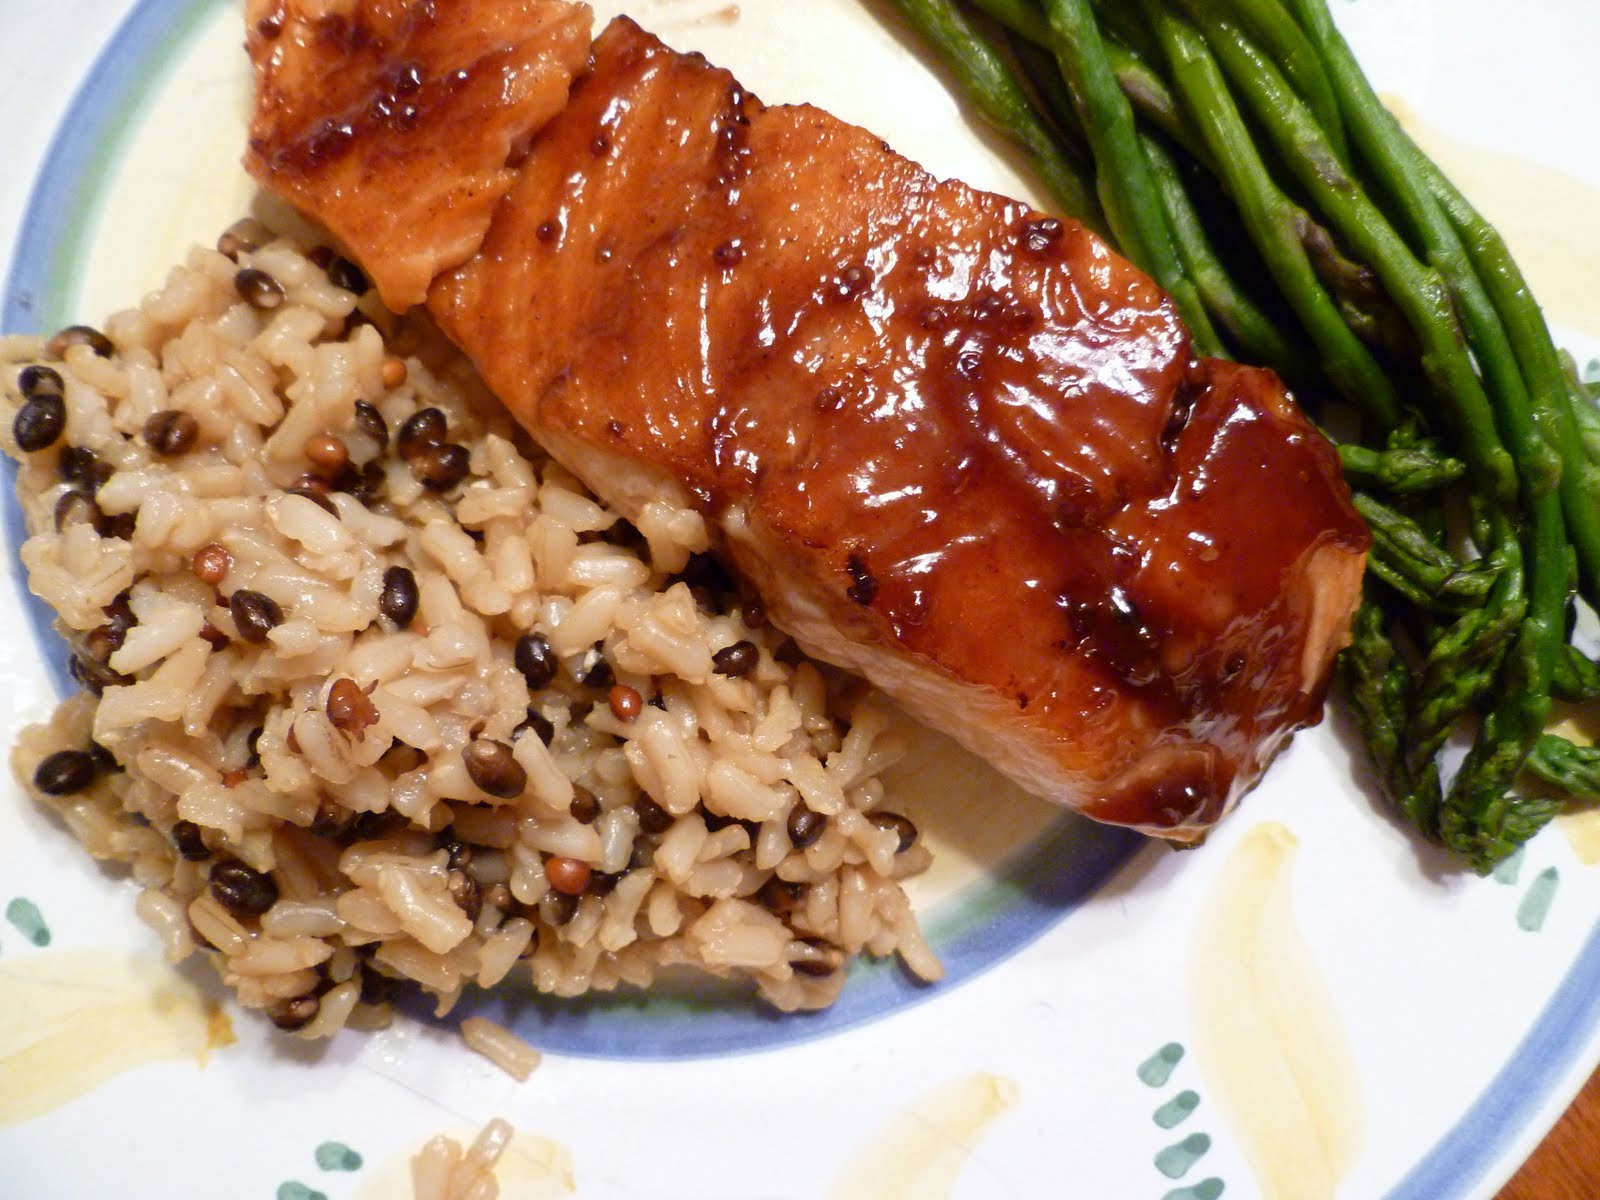 The Fanciful Fig: Pomegranate-Balsamic Glazed Salmon